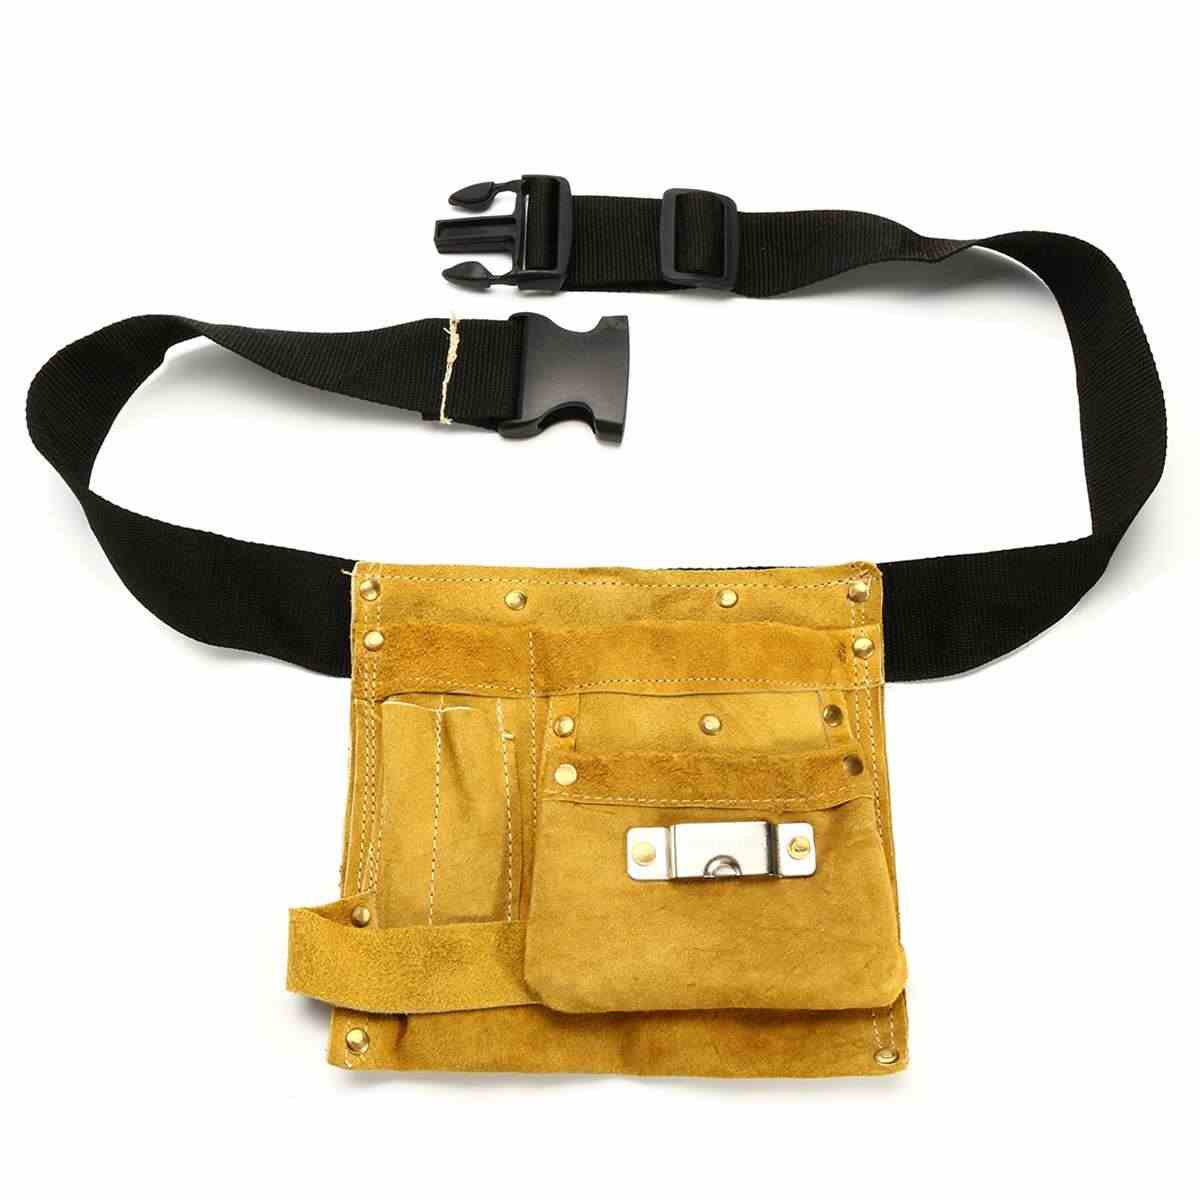 8/14 Pockets Leather Waist Tool Belt Pouch Bag Screwdriver Kit Repair Tool Holder Portable Carpenter Electrician Accessories